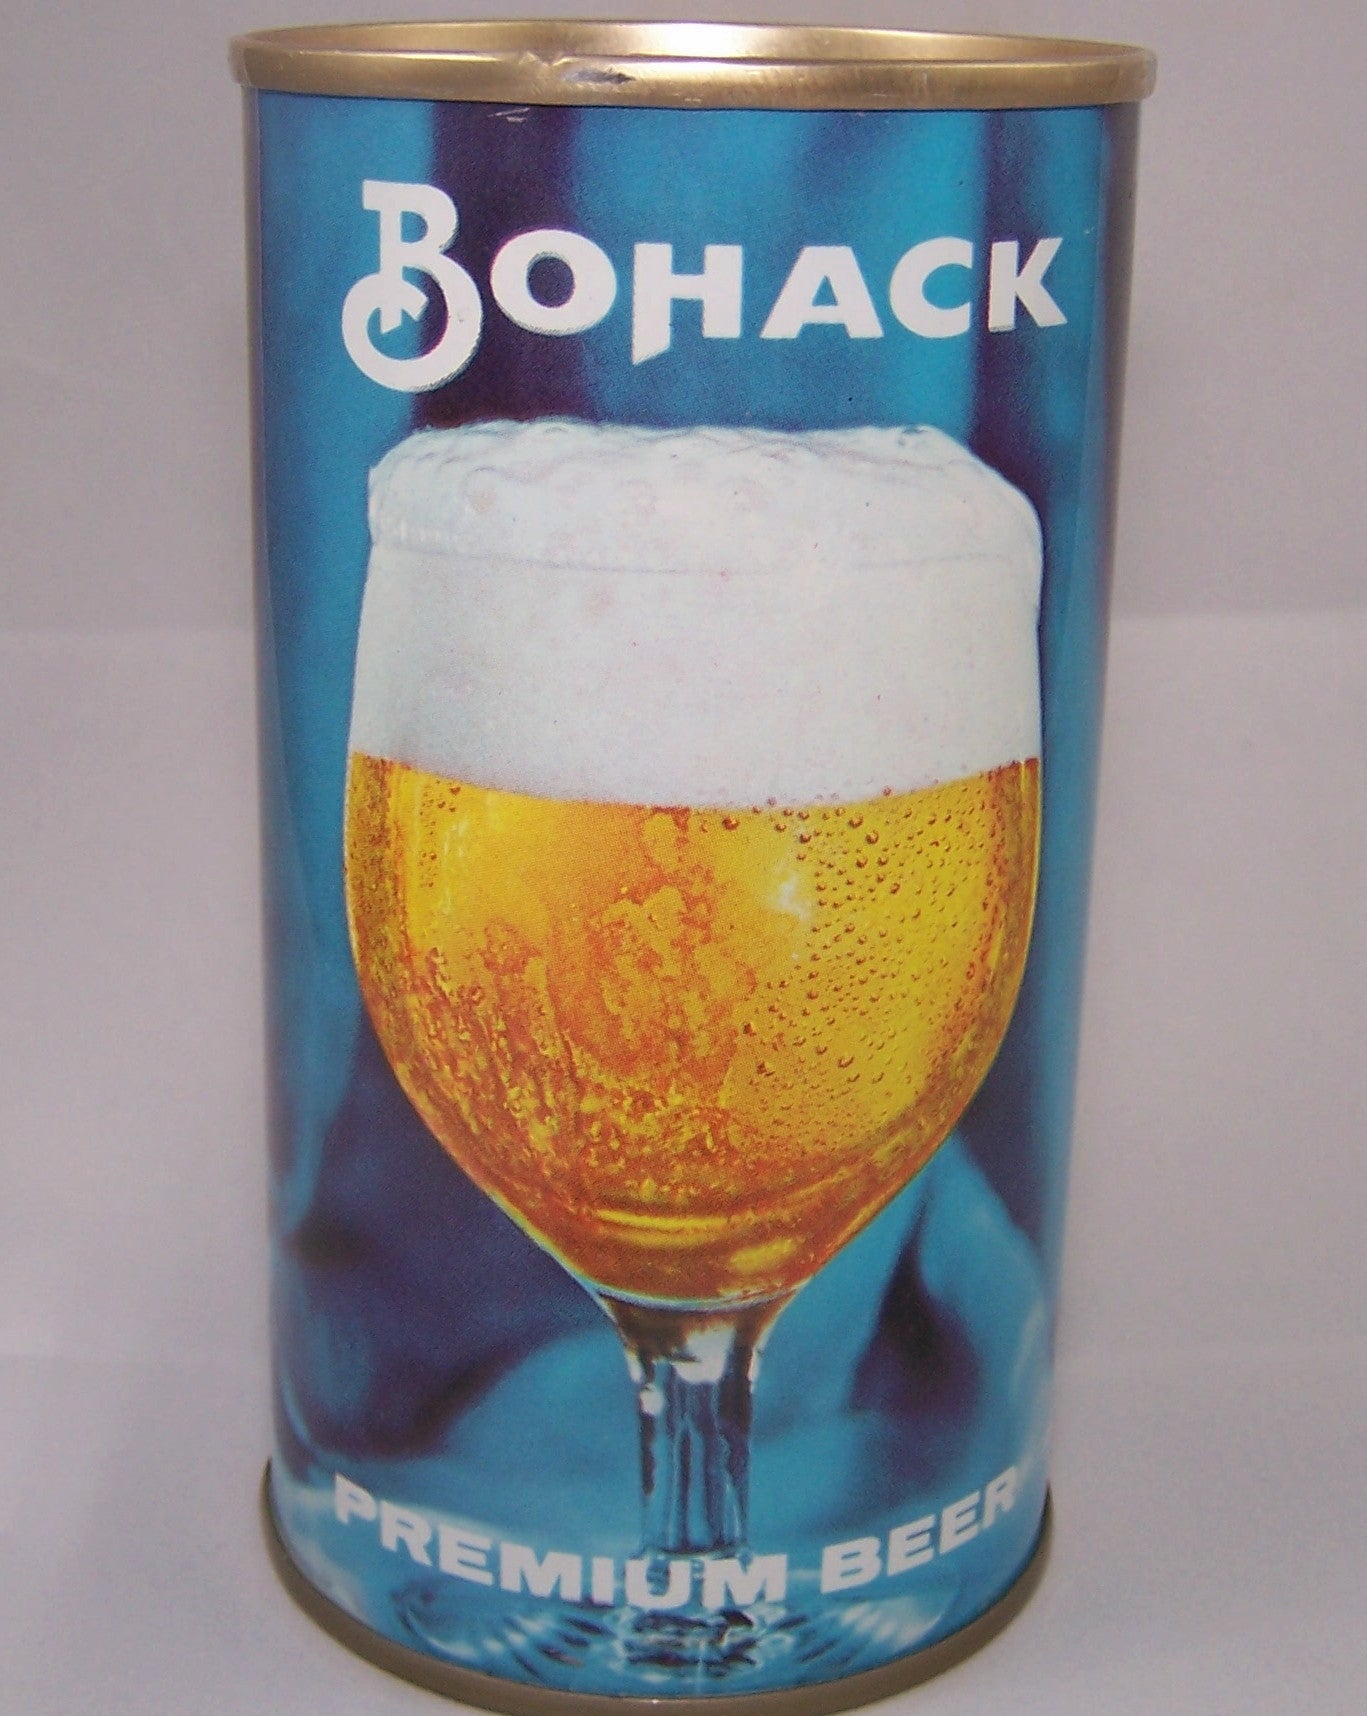 Bohack Premium Beer, USBC II 44-12, Grade A1+ Sold on 4/12/15